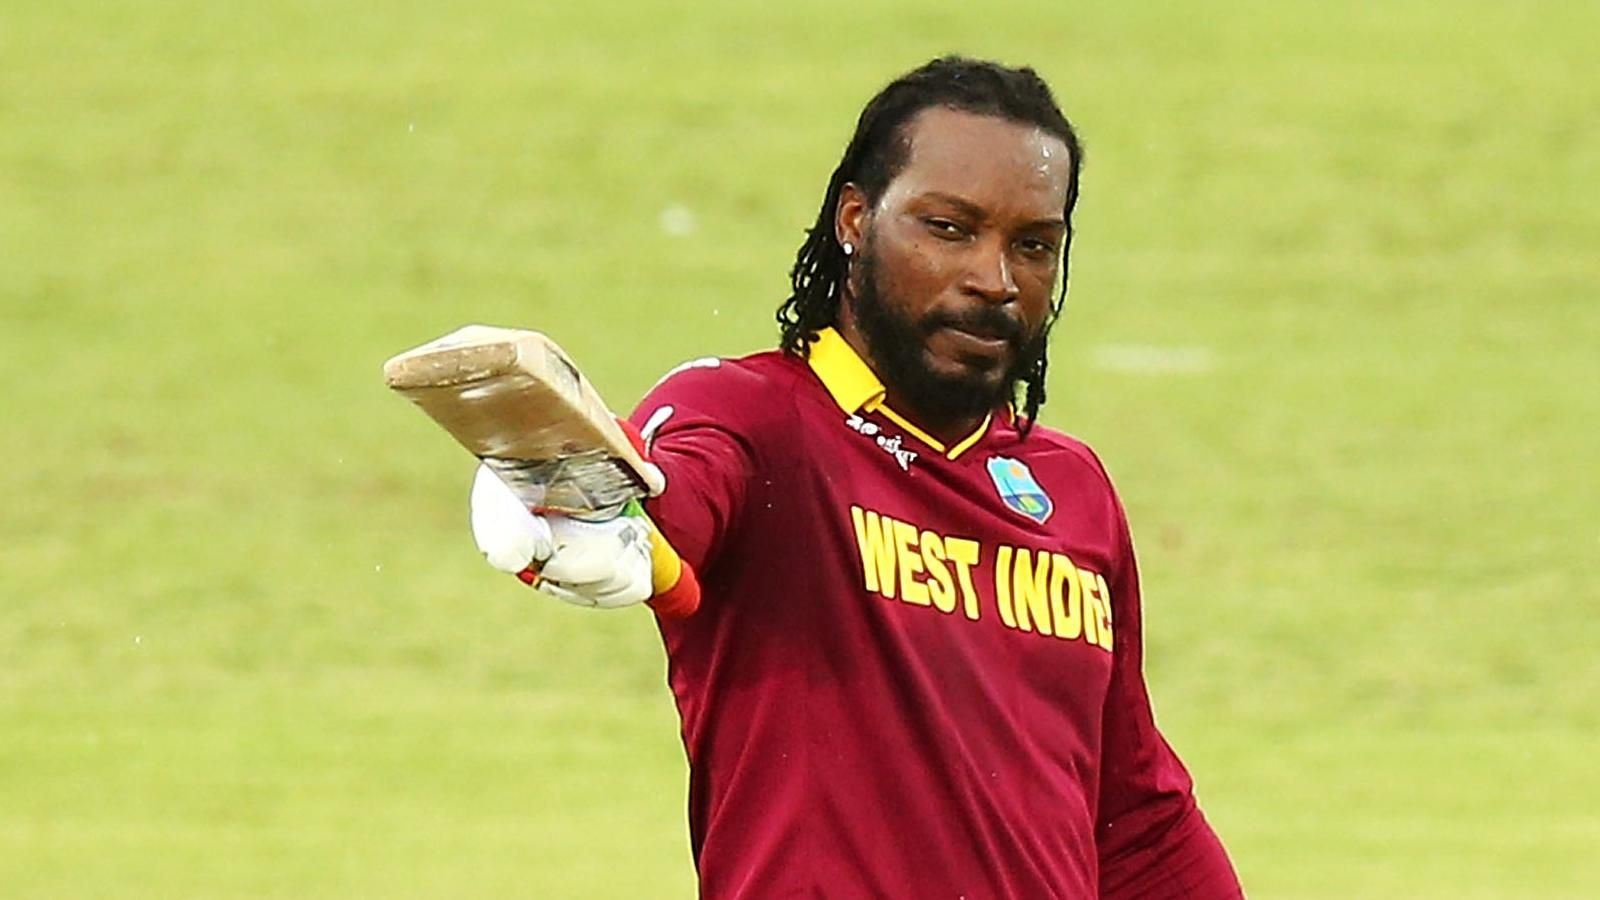 Chris Gayle - Richest Cricketers 2018